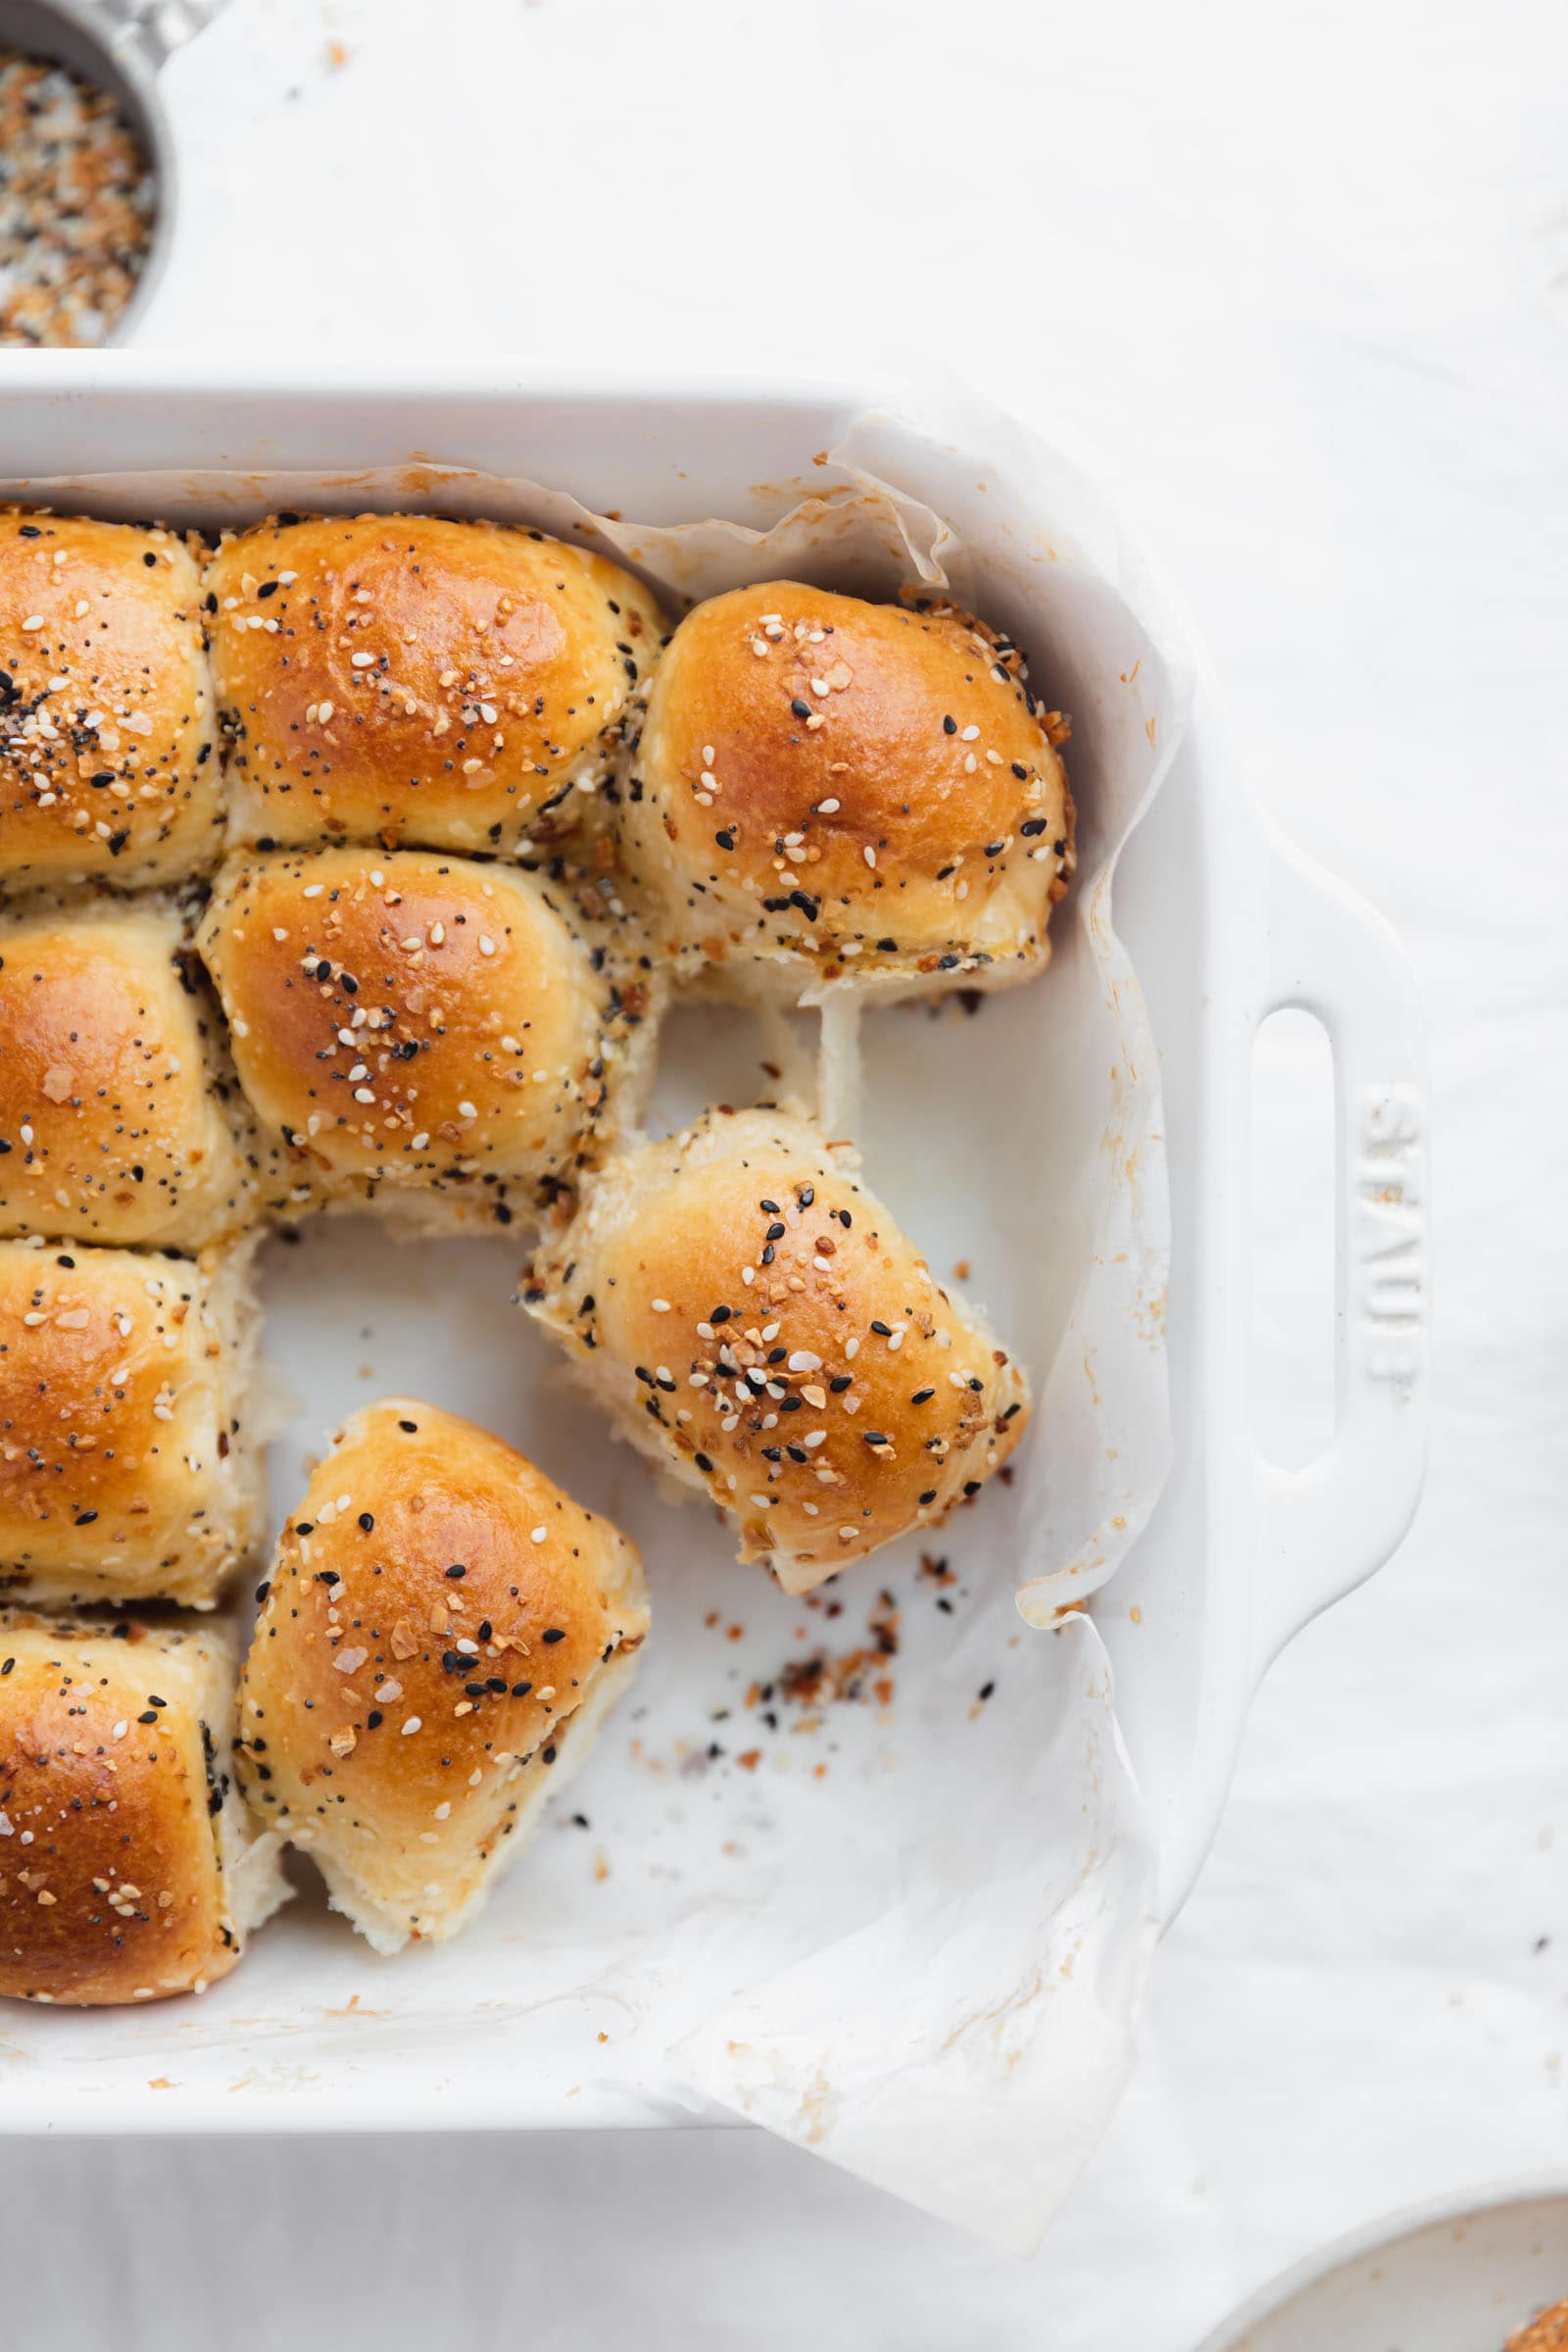 everything parker house rolls with seasoning